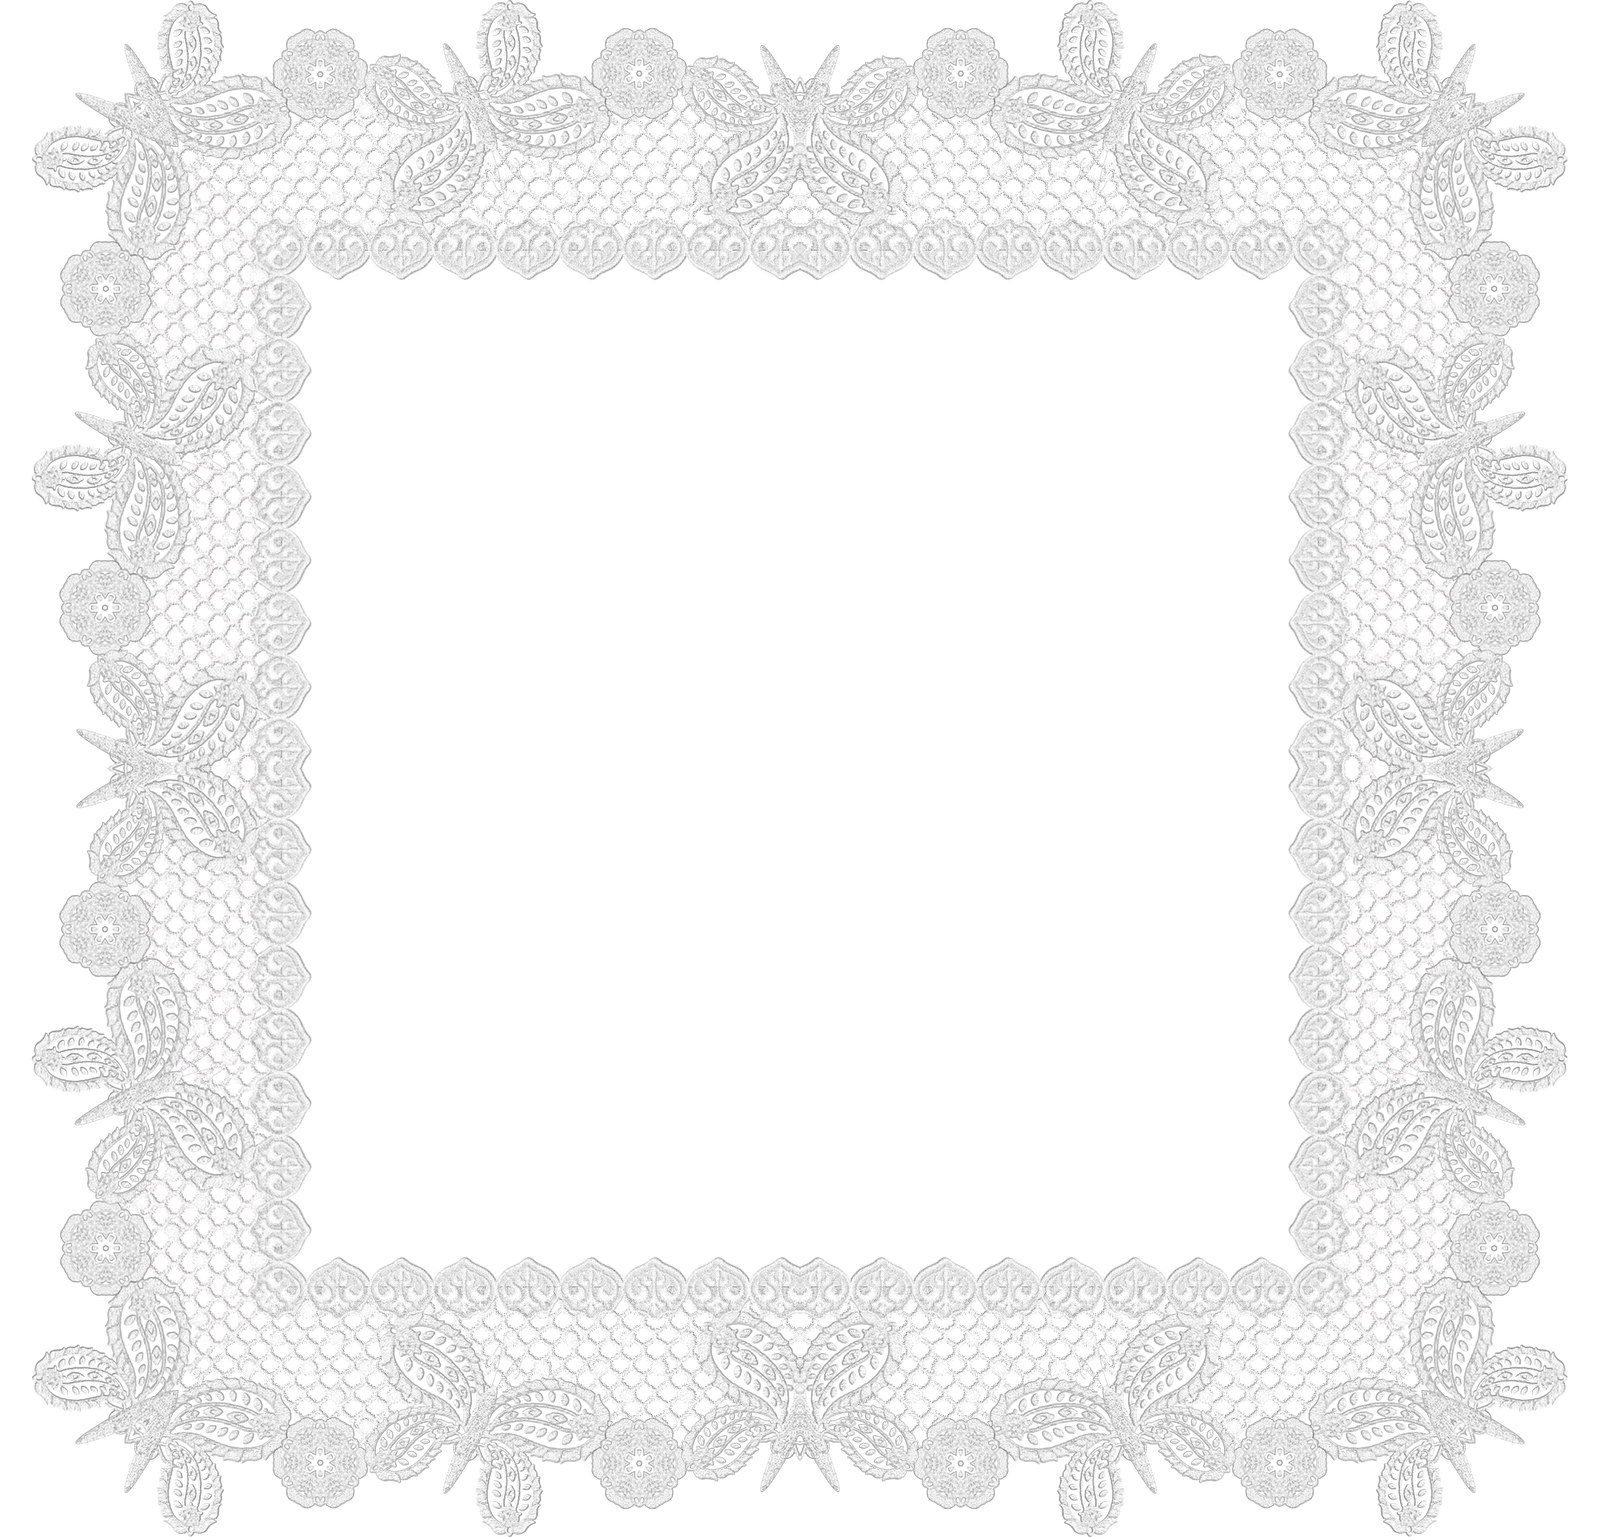 Transparent pictures free icons. Lace border png